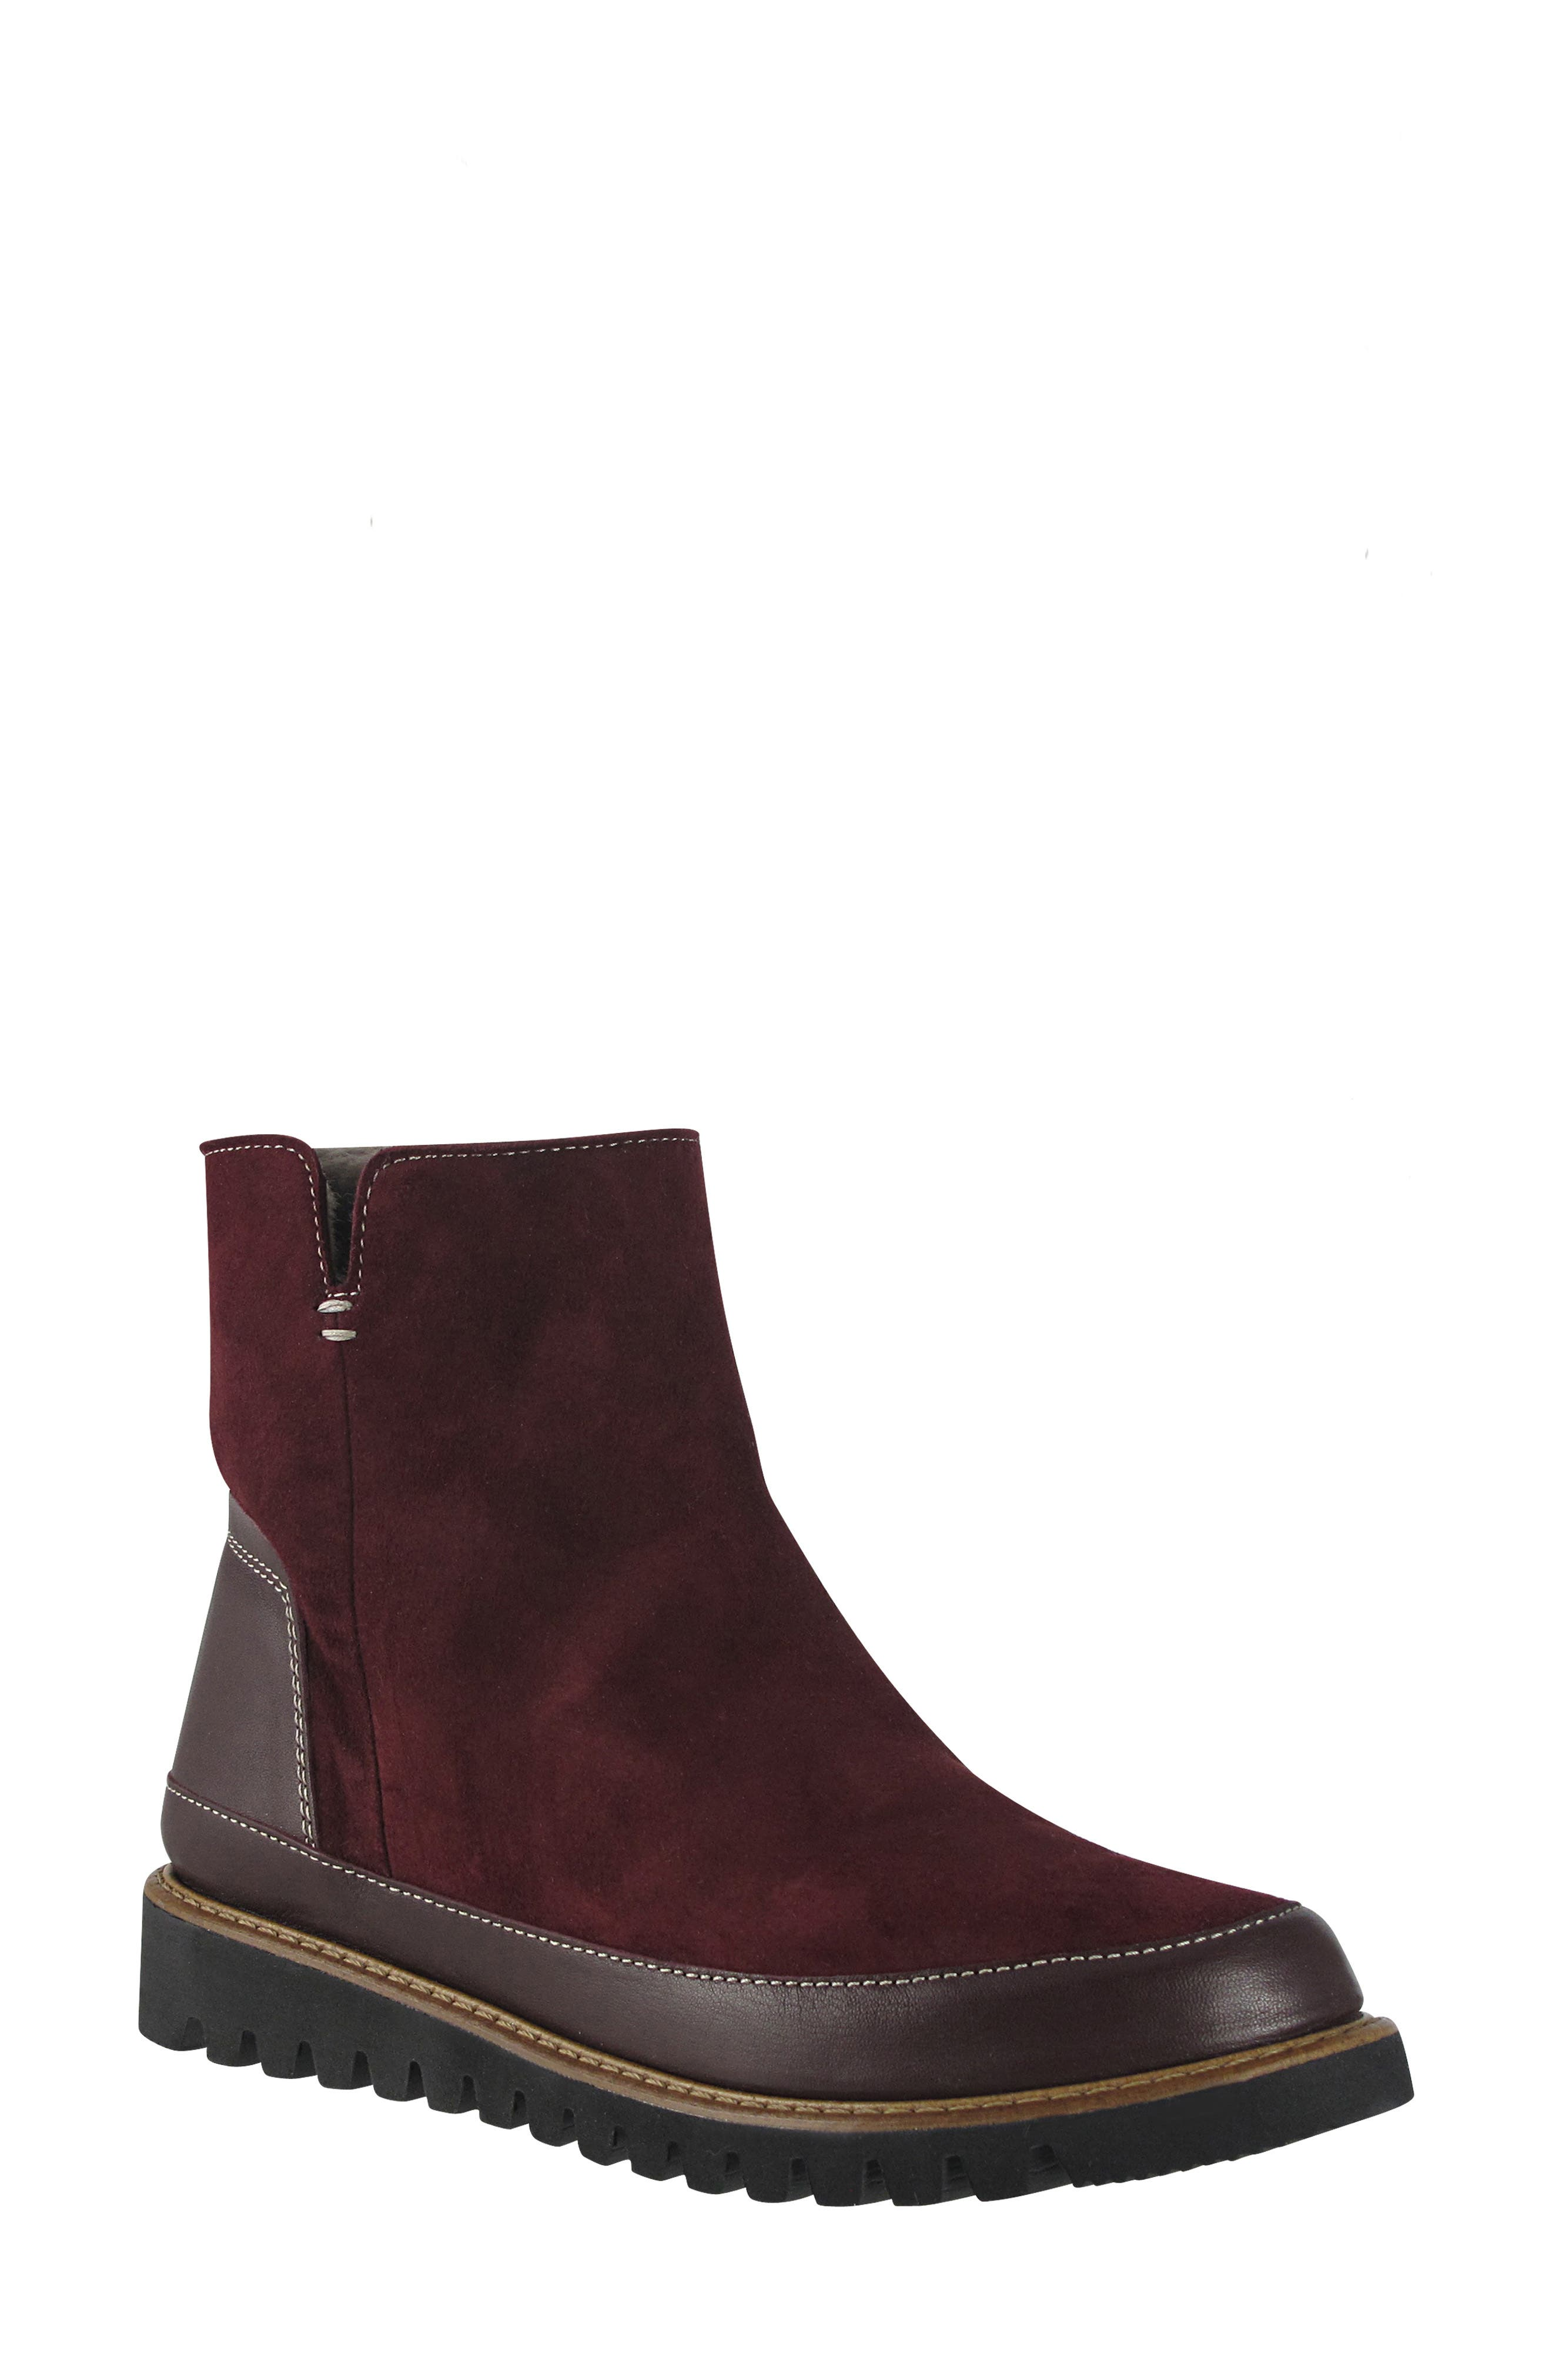 Women's Ron White Shoes   Nordstrom